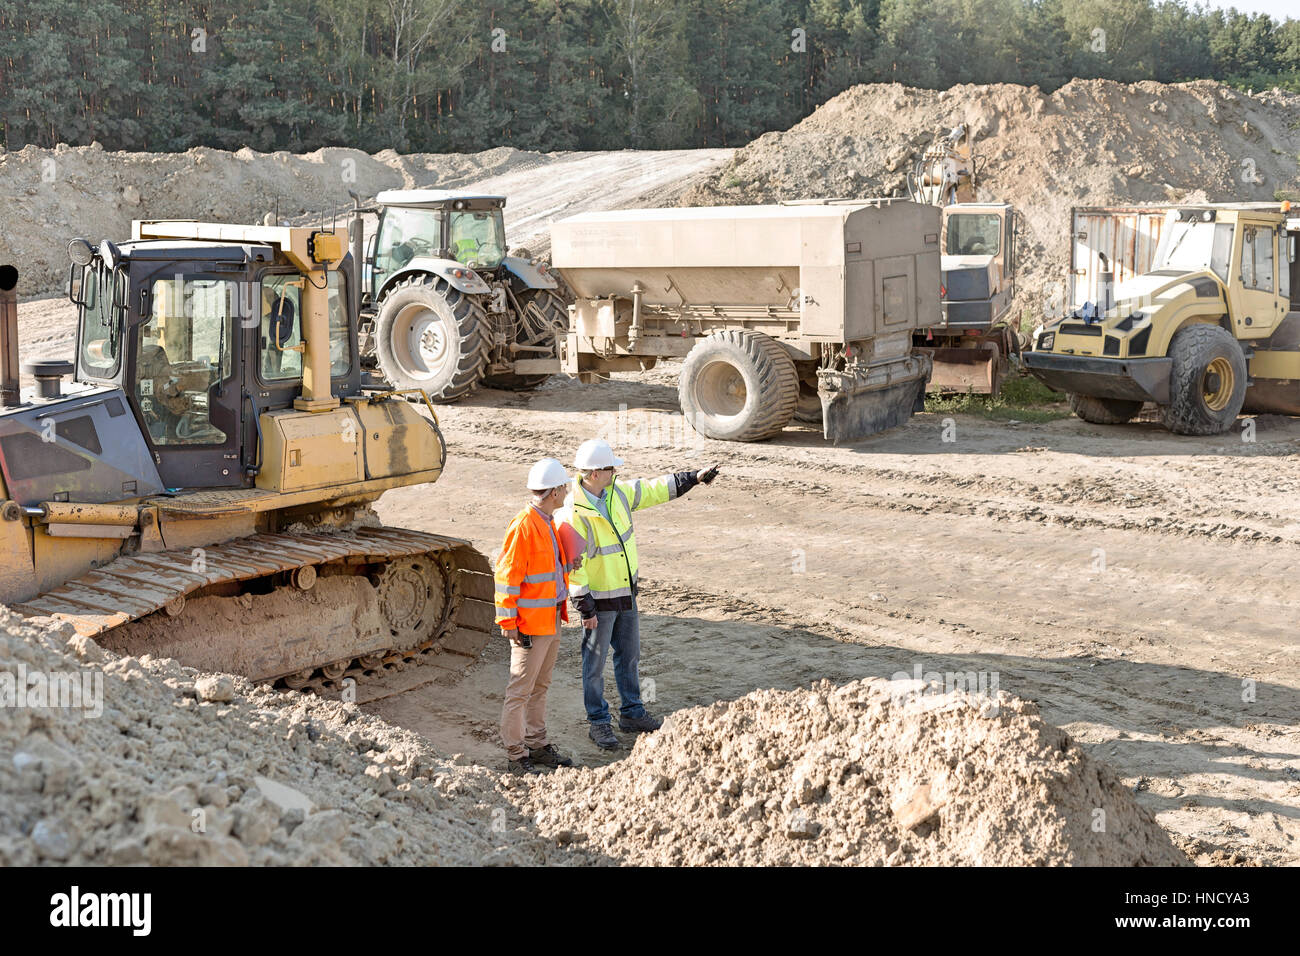 Supervisor showing something to colleague at construction site - Stock Image